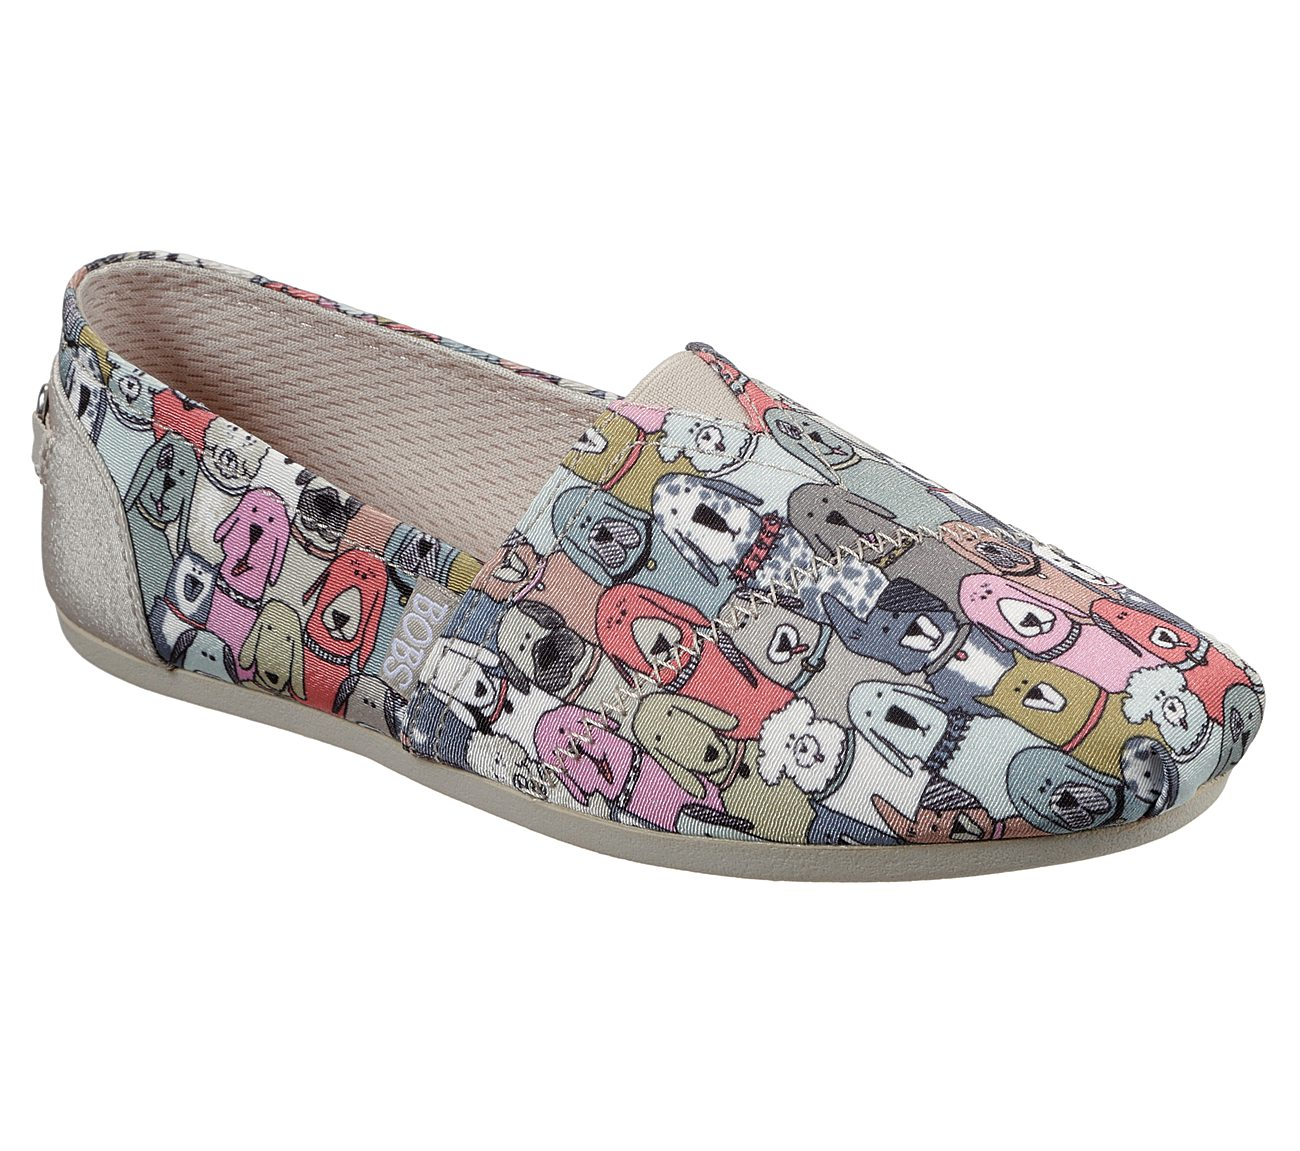 d8f109c8faa Buy SKECHERS BOBS Plush - Wag Party BOBS Shoes only  45.00